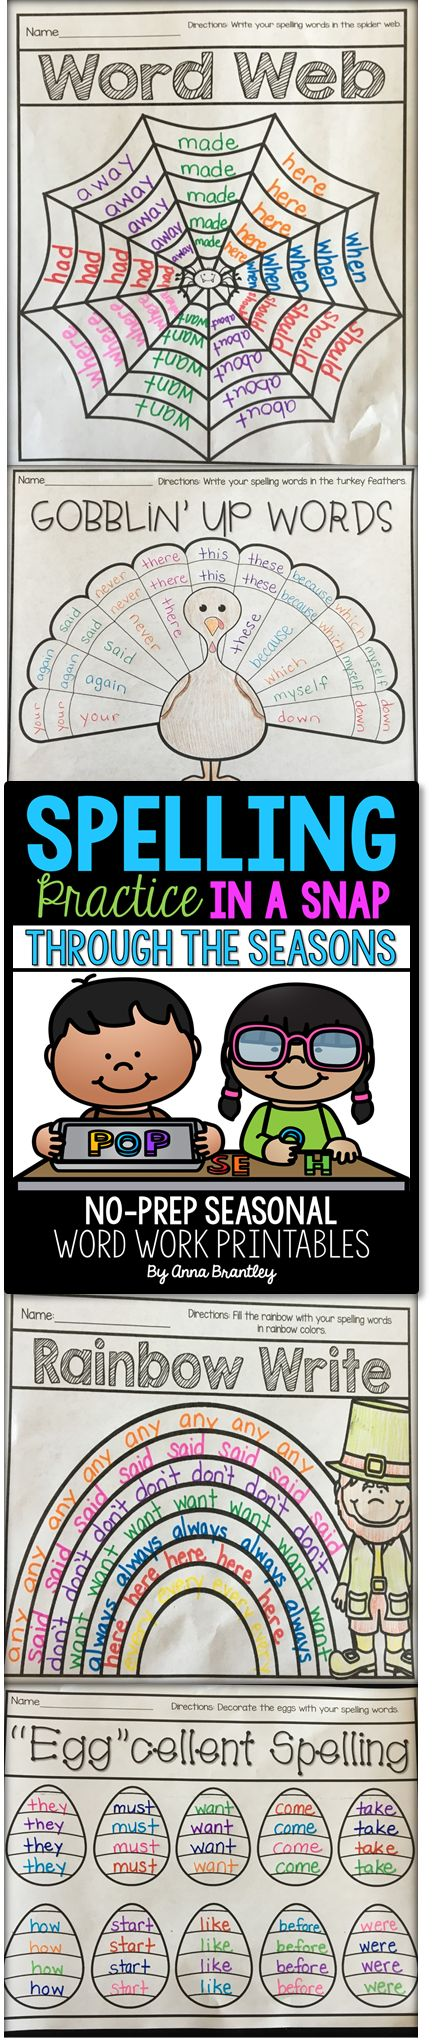 https://www.teacherspayteachers.com/Product/Spelling-Practice-in-a-Snap-Through-the-Seasons-3046890 Need to spice up your word work stations and/or spelling practice during the holidays? This packet includes 20+ seasonal themed spelling activities that are sure to keep your students engaged and having fun while working with words! Everything is print and go ready to save you time!